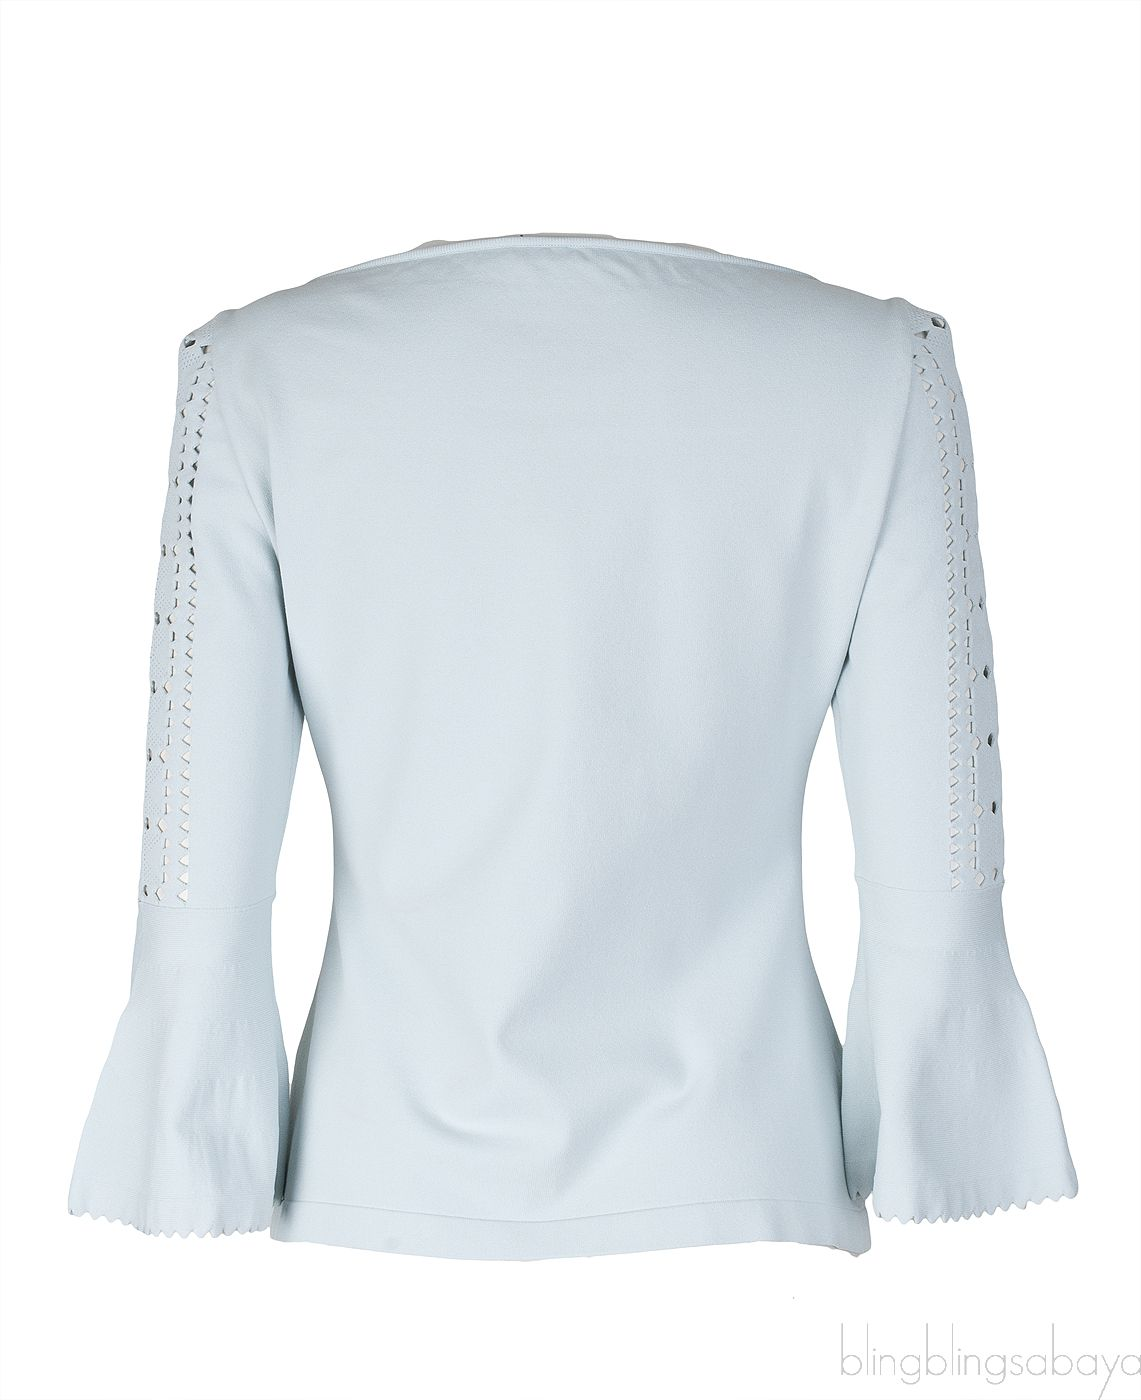 Light Blue Perforated Top